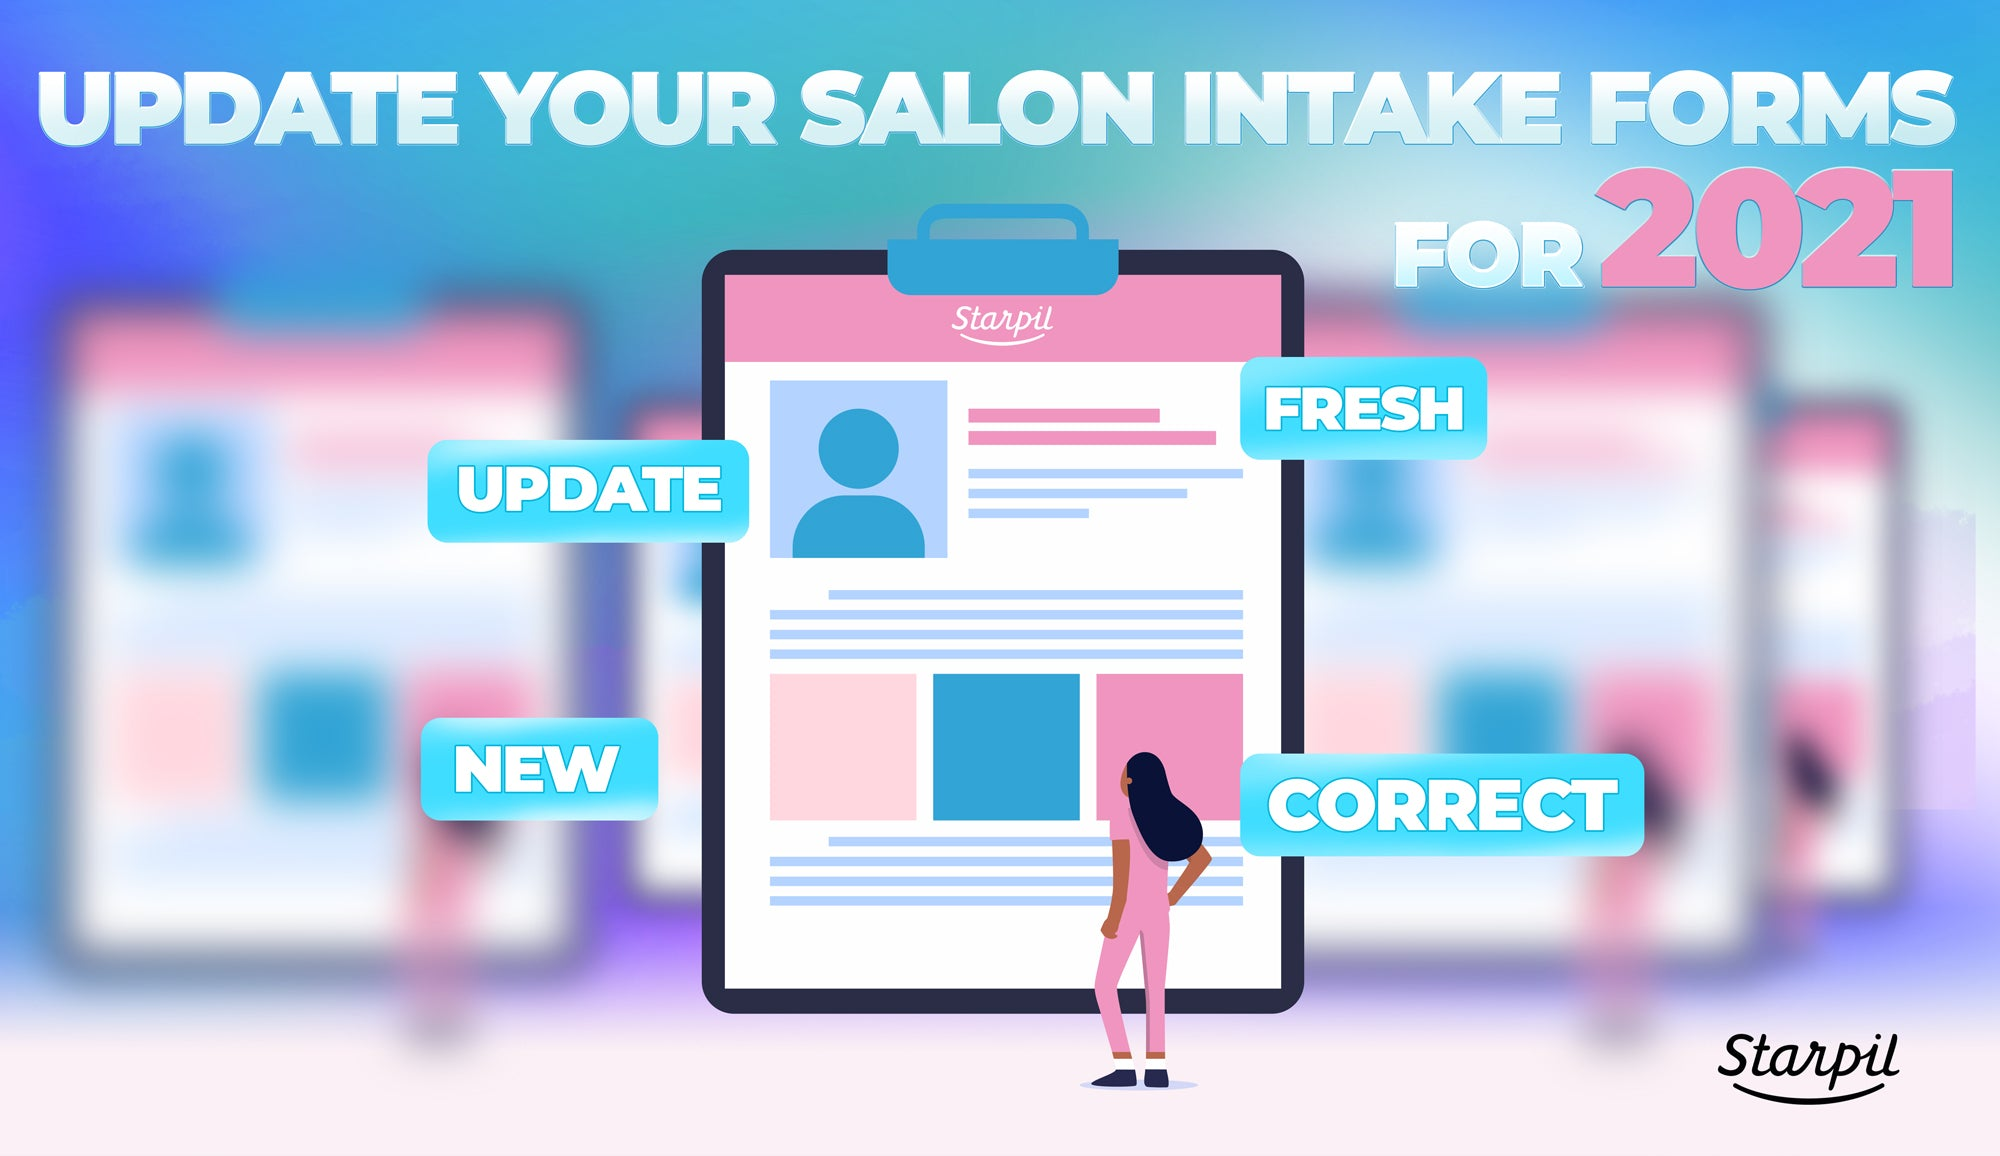 Update Your Salon Intake Forms for 2021